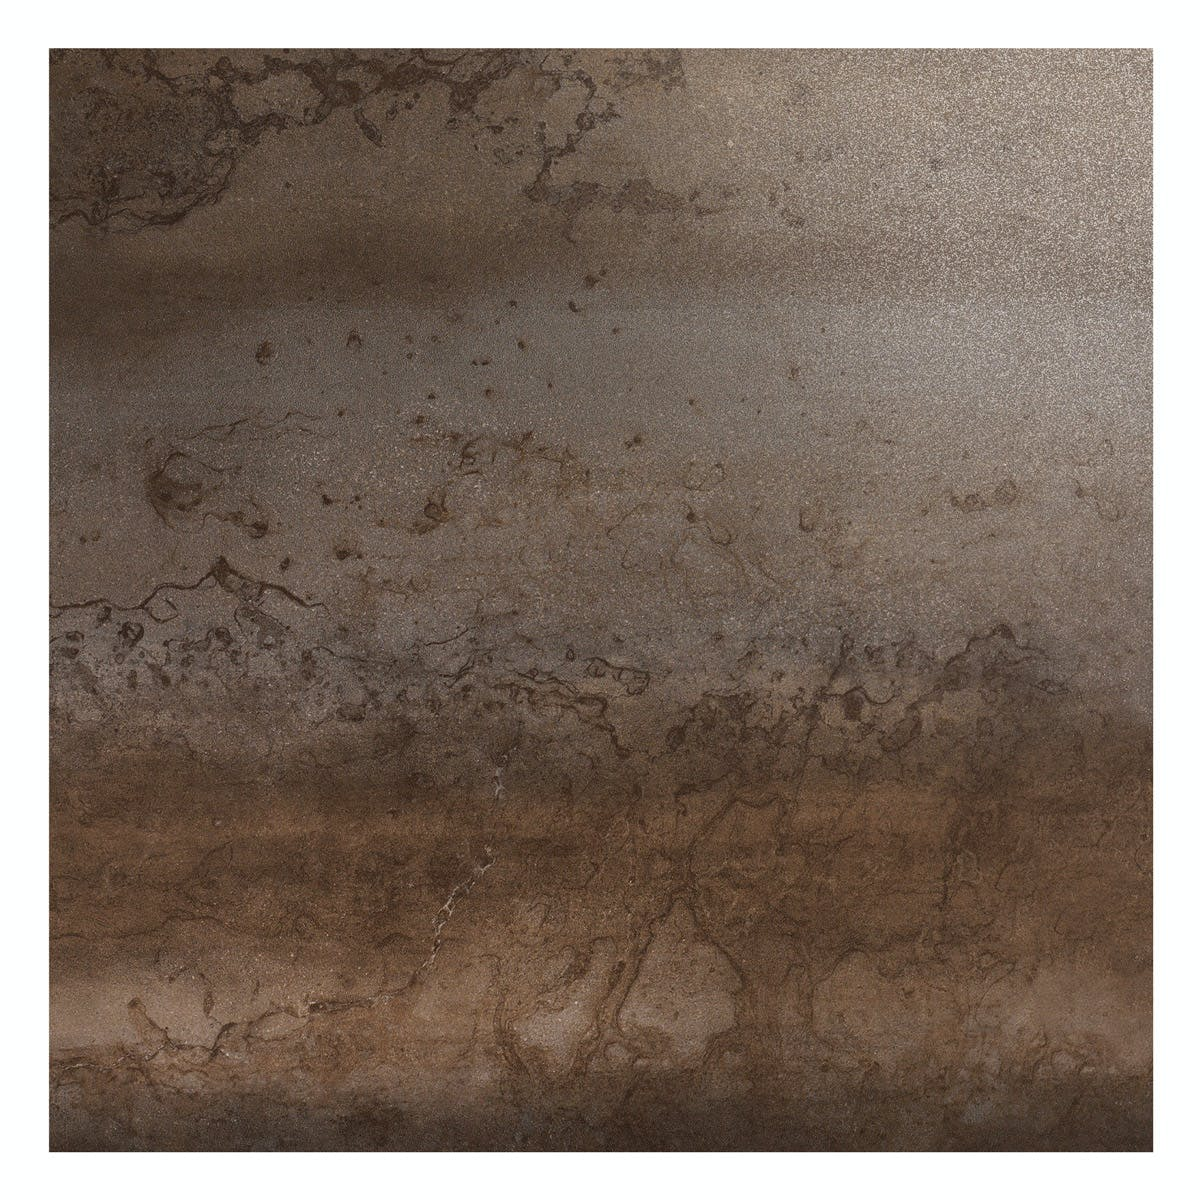 Cosmic Copper Effect Lappato Textured Wall And Floor Tile 600mm X 600mm Victoriaplum Com